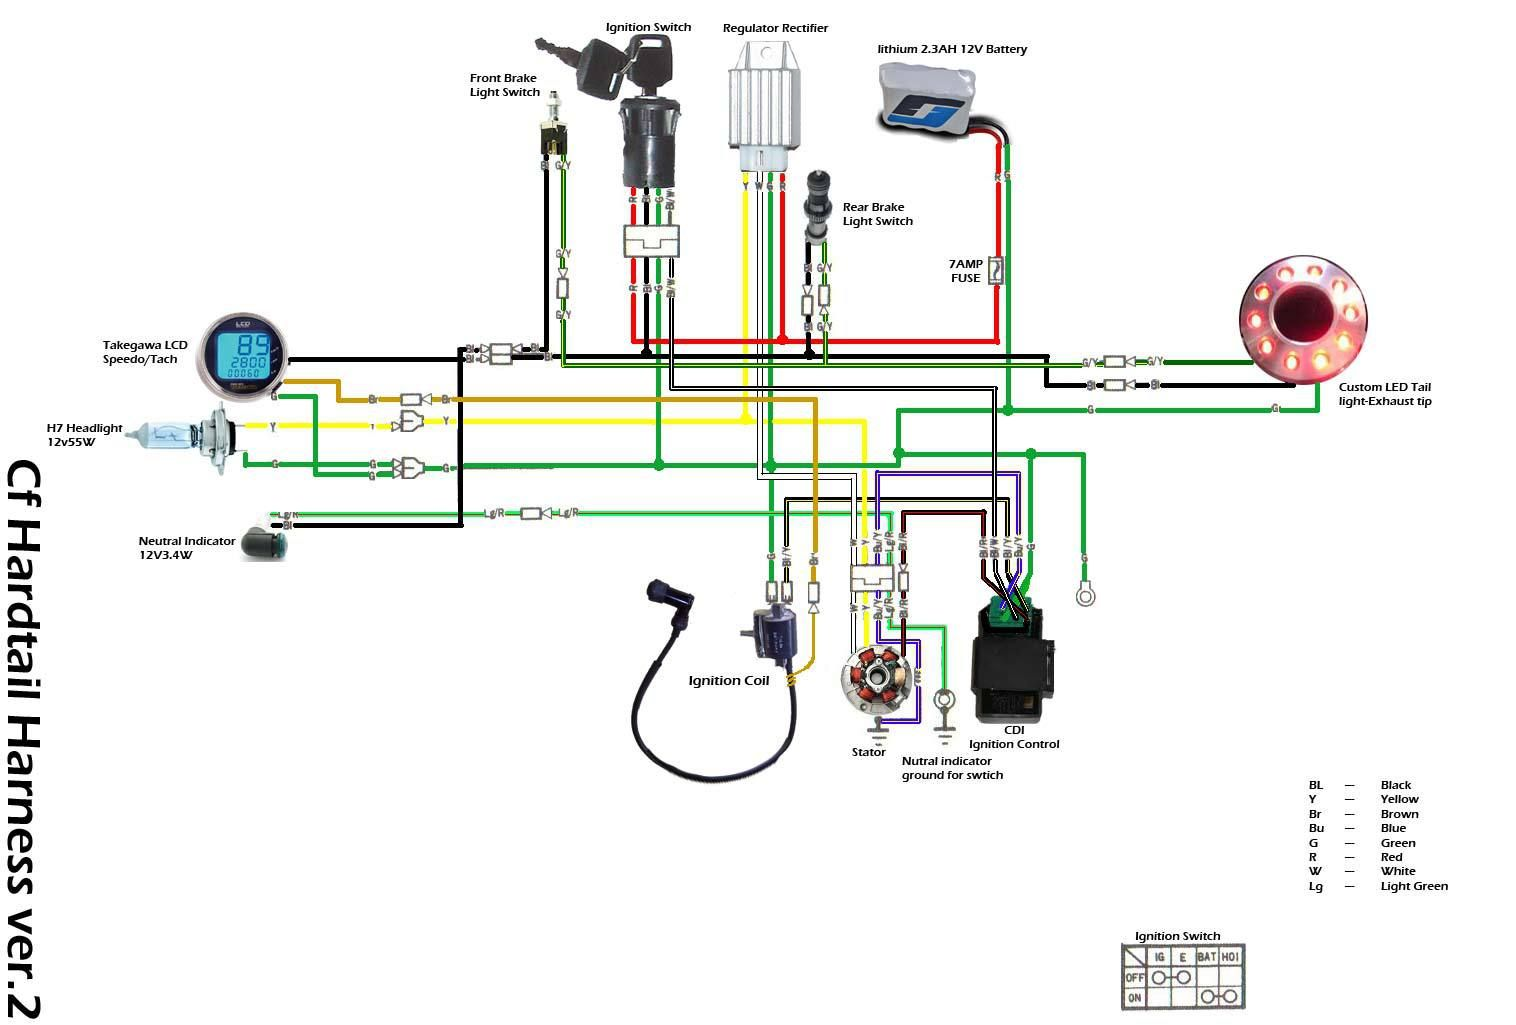 110cc Basic Wiring Setup ATVConnection Com ATV Enthusiast Community Within  110Cc Chinese Atv Diagram | Motorcycle wiring, Pit bike, Bike enginePinterest